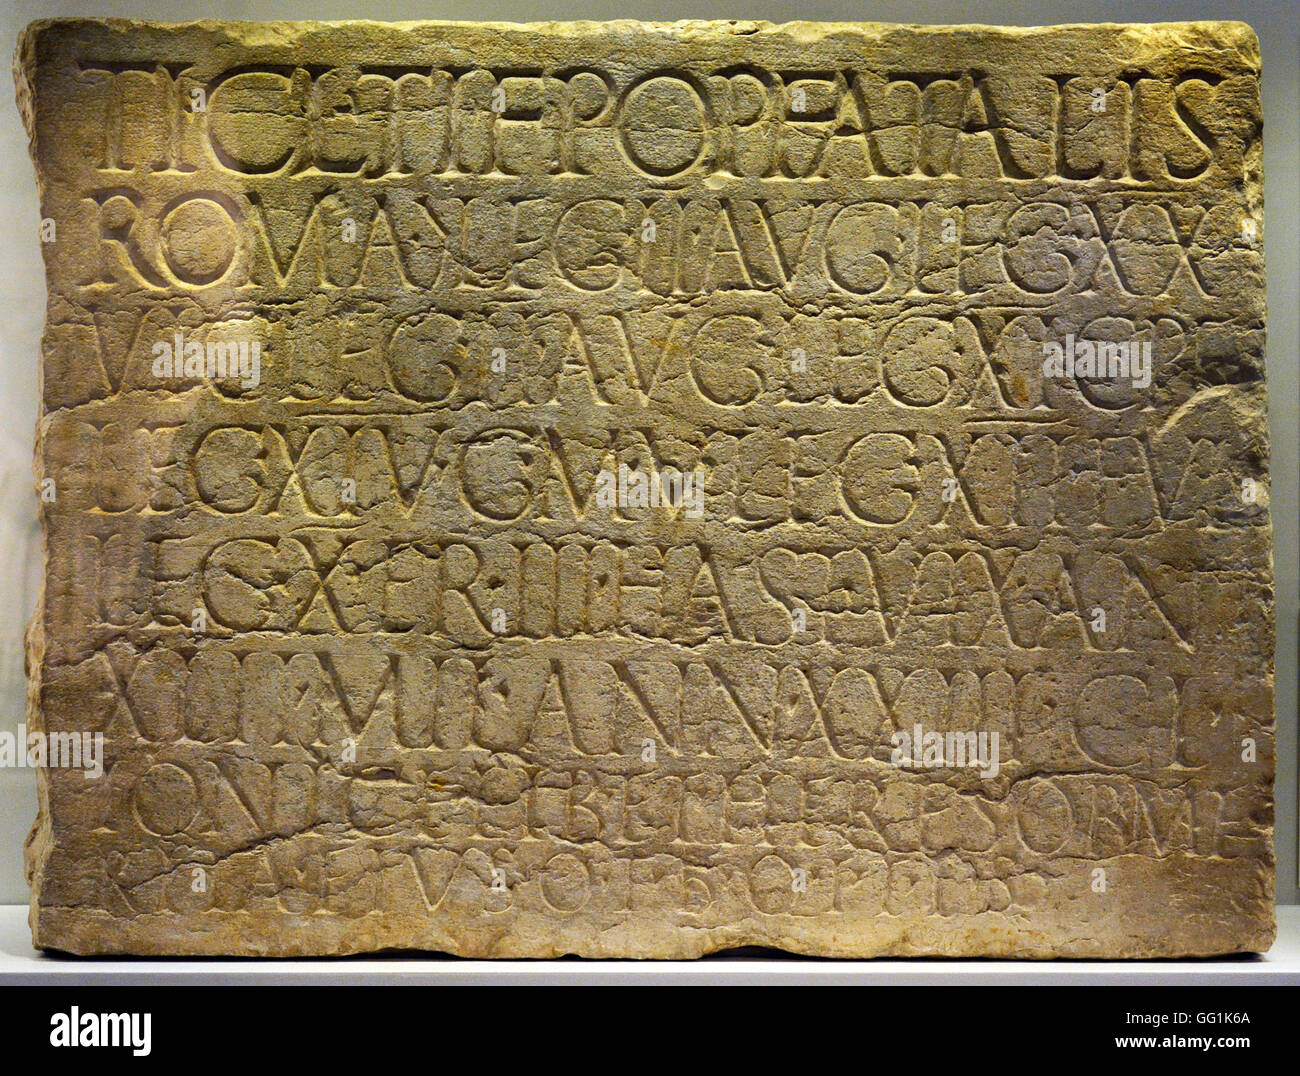 5914. Tombstone inscription of a Roman Centurion who died in Jerusalem in the 1st. C. AD - Stock Image